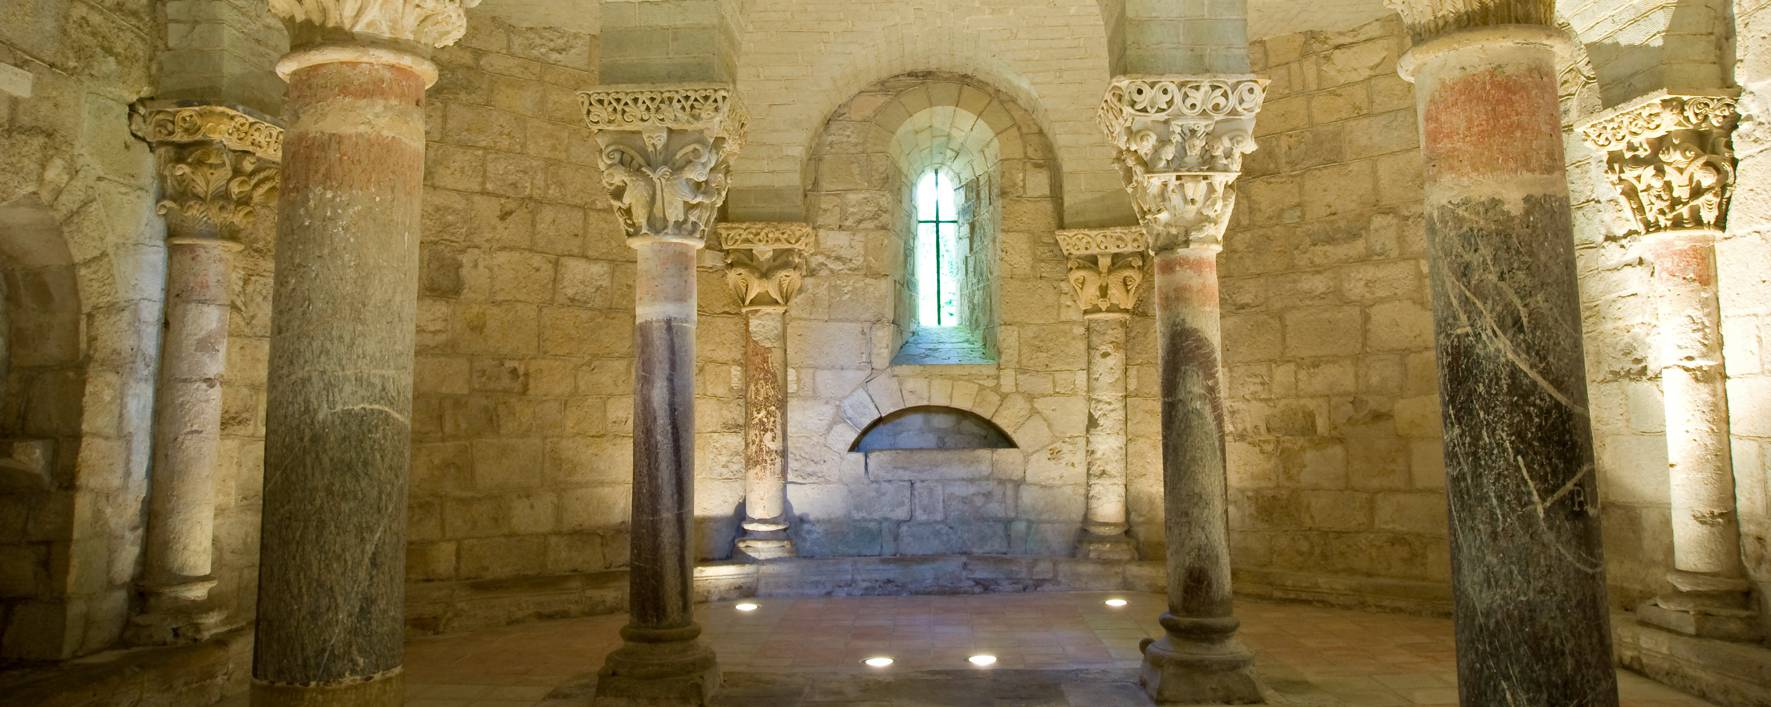 Inside the crypt of St Girons - © PACT/ Anne Lanta